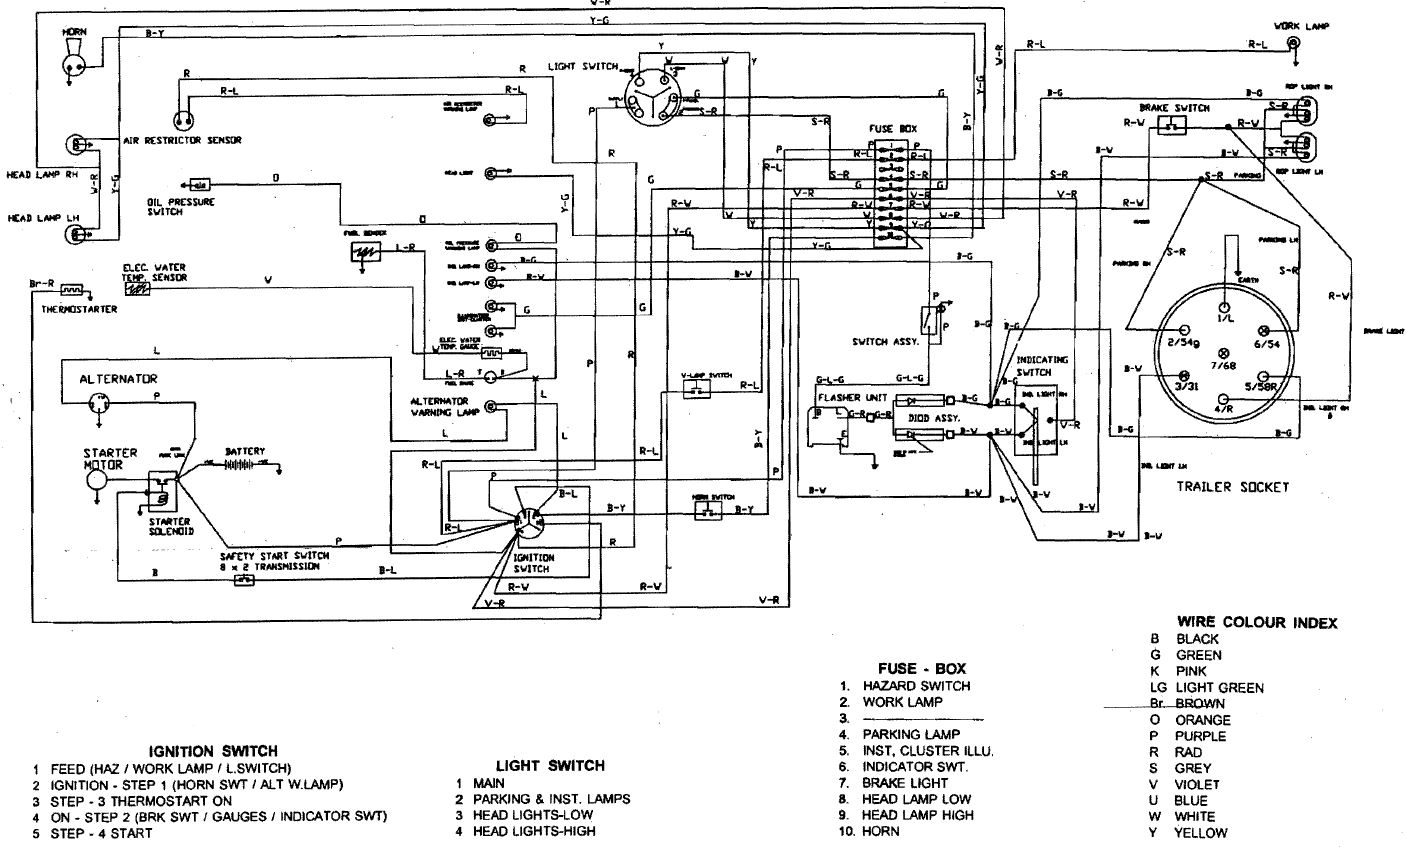 20158463319_b82d524c3d_o ignition switch wiring diagram tractor ignition switch wiring diagram at soozxer.org